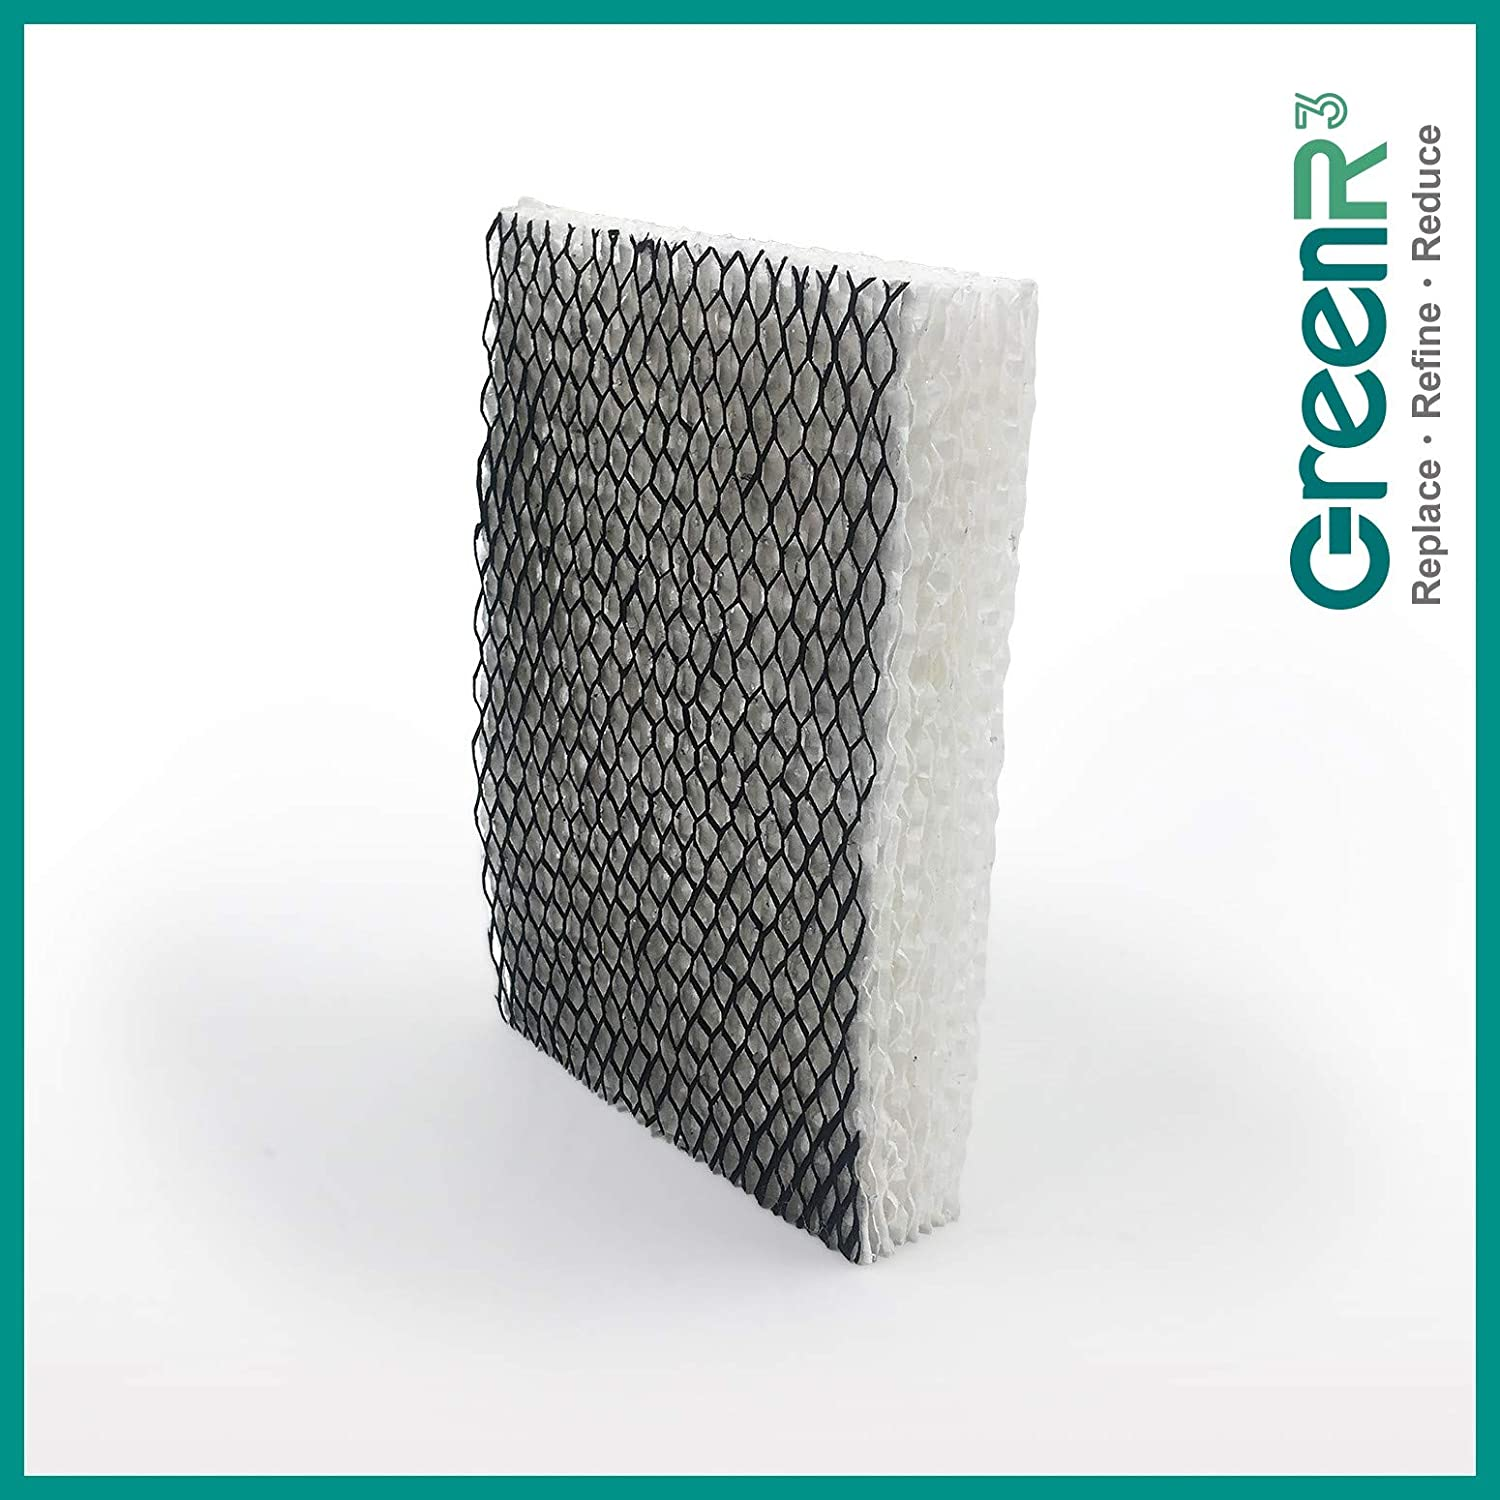 GreenR3 3-Pack Replacement Humidifier Wick Filters for Bionaire BWF100 Fits BCM600 BCM630 BCM646BF BCM646C BCM655 BCM657 BCM658 BCM4655 BCM5520 BCM7255 BCM7305RC BCM7308 BCM7510 Sunbeam SCM2412